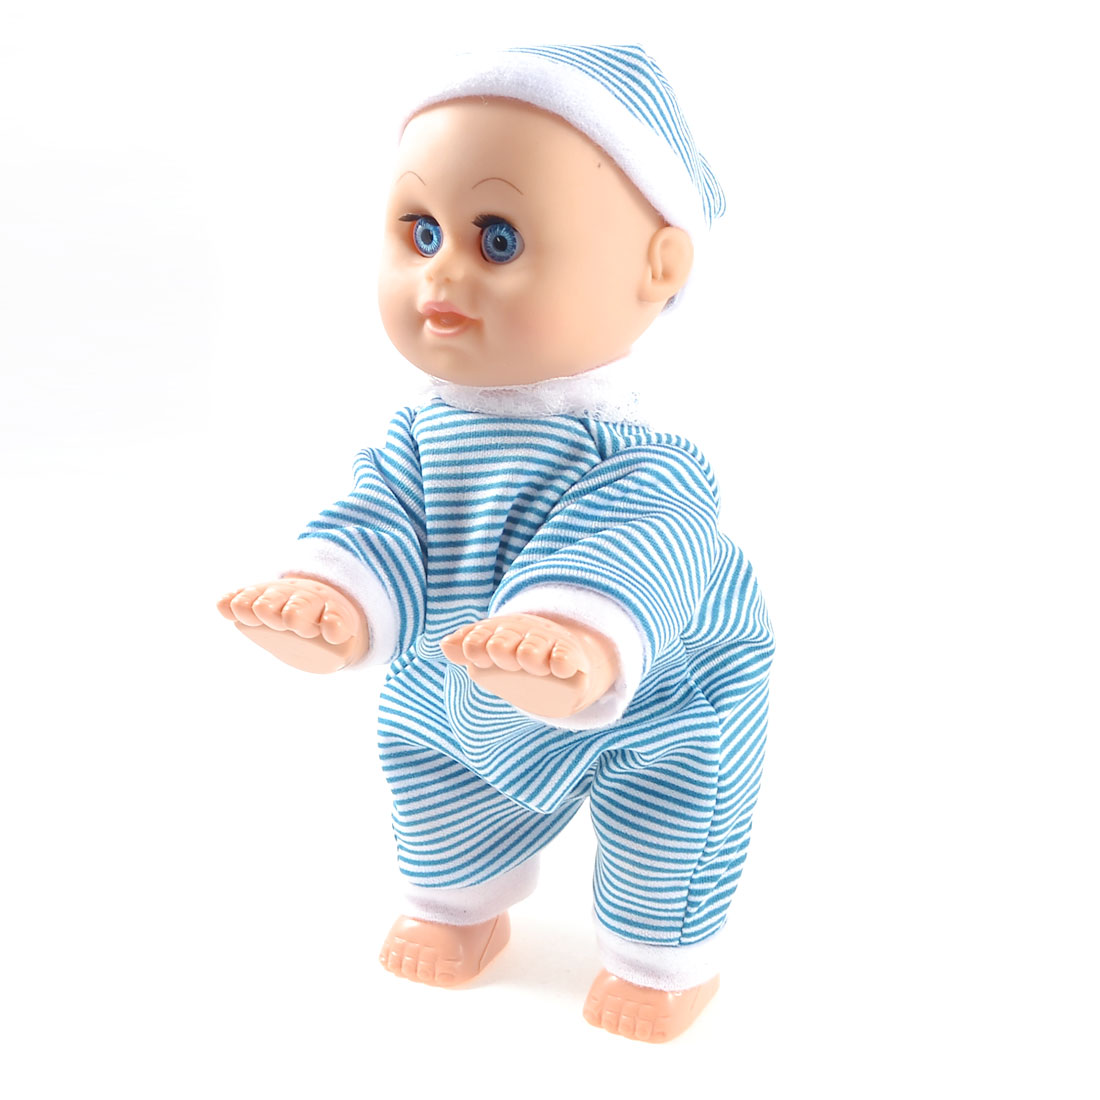 Blue White Striped Jumpsuit Plastic Crawling Dance Baby Laugh Music Doll Toy